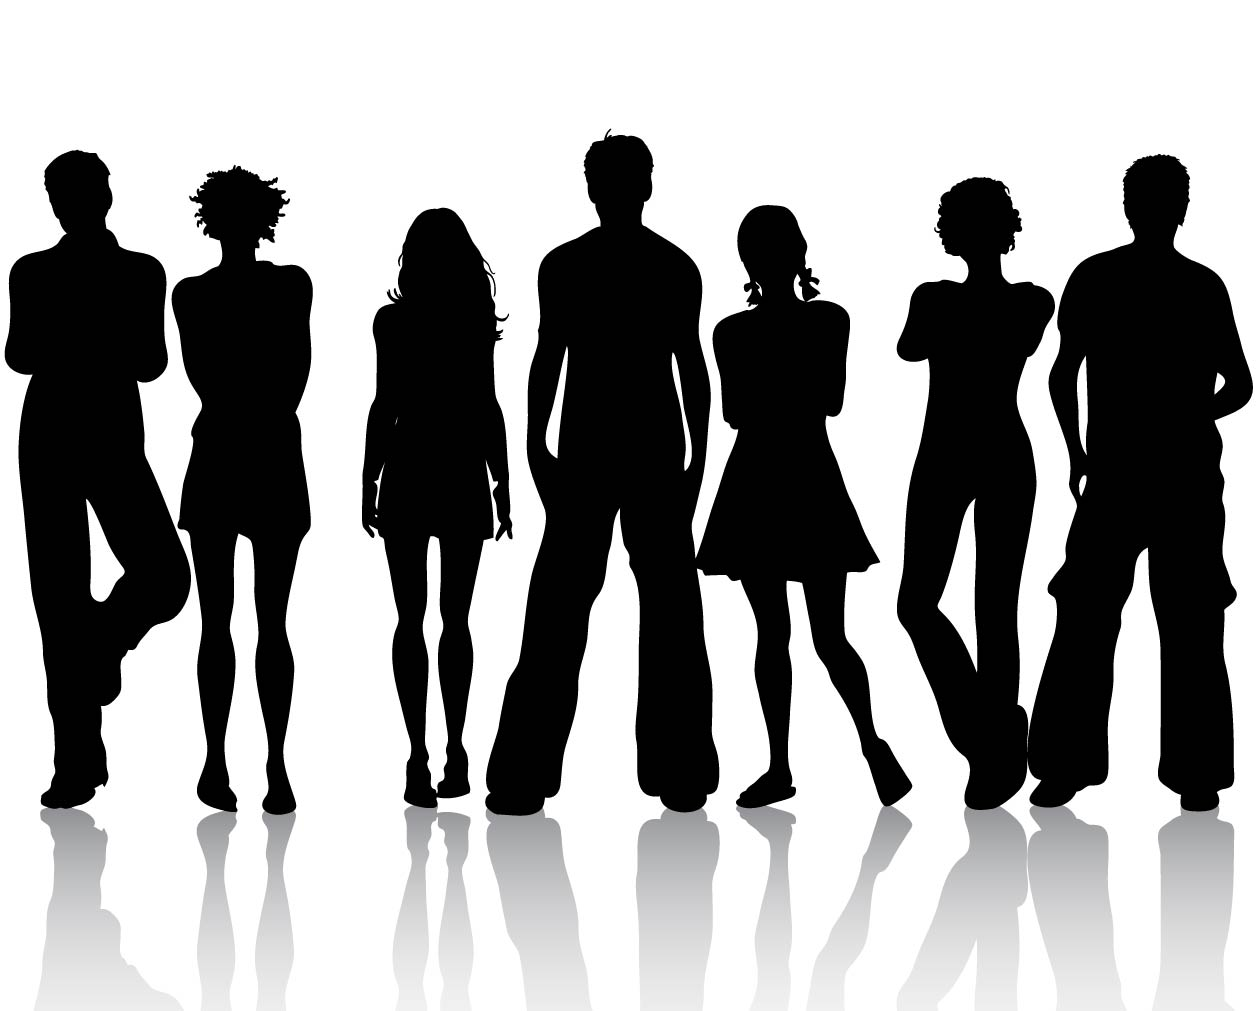 People Silhouettes Vector Illustration - Ai, Svg, Eps ...